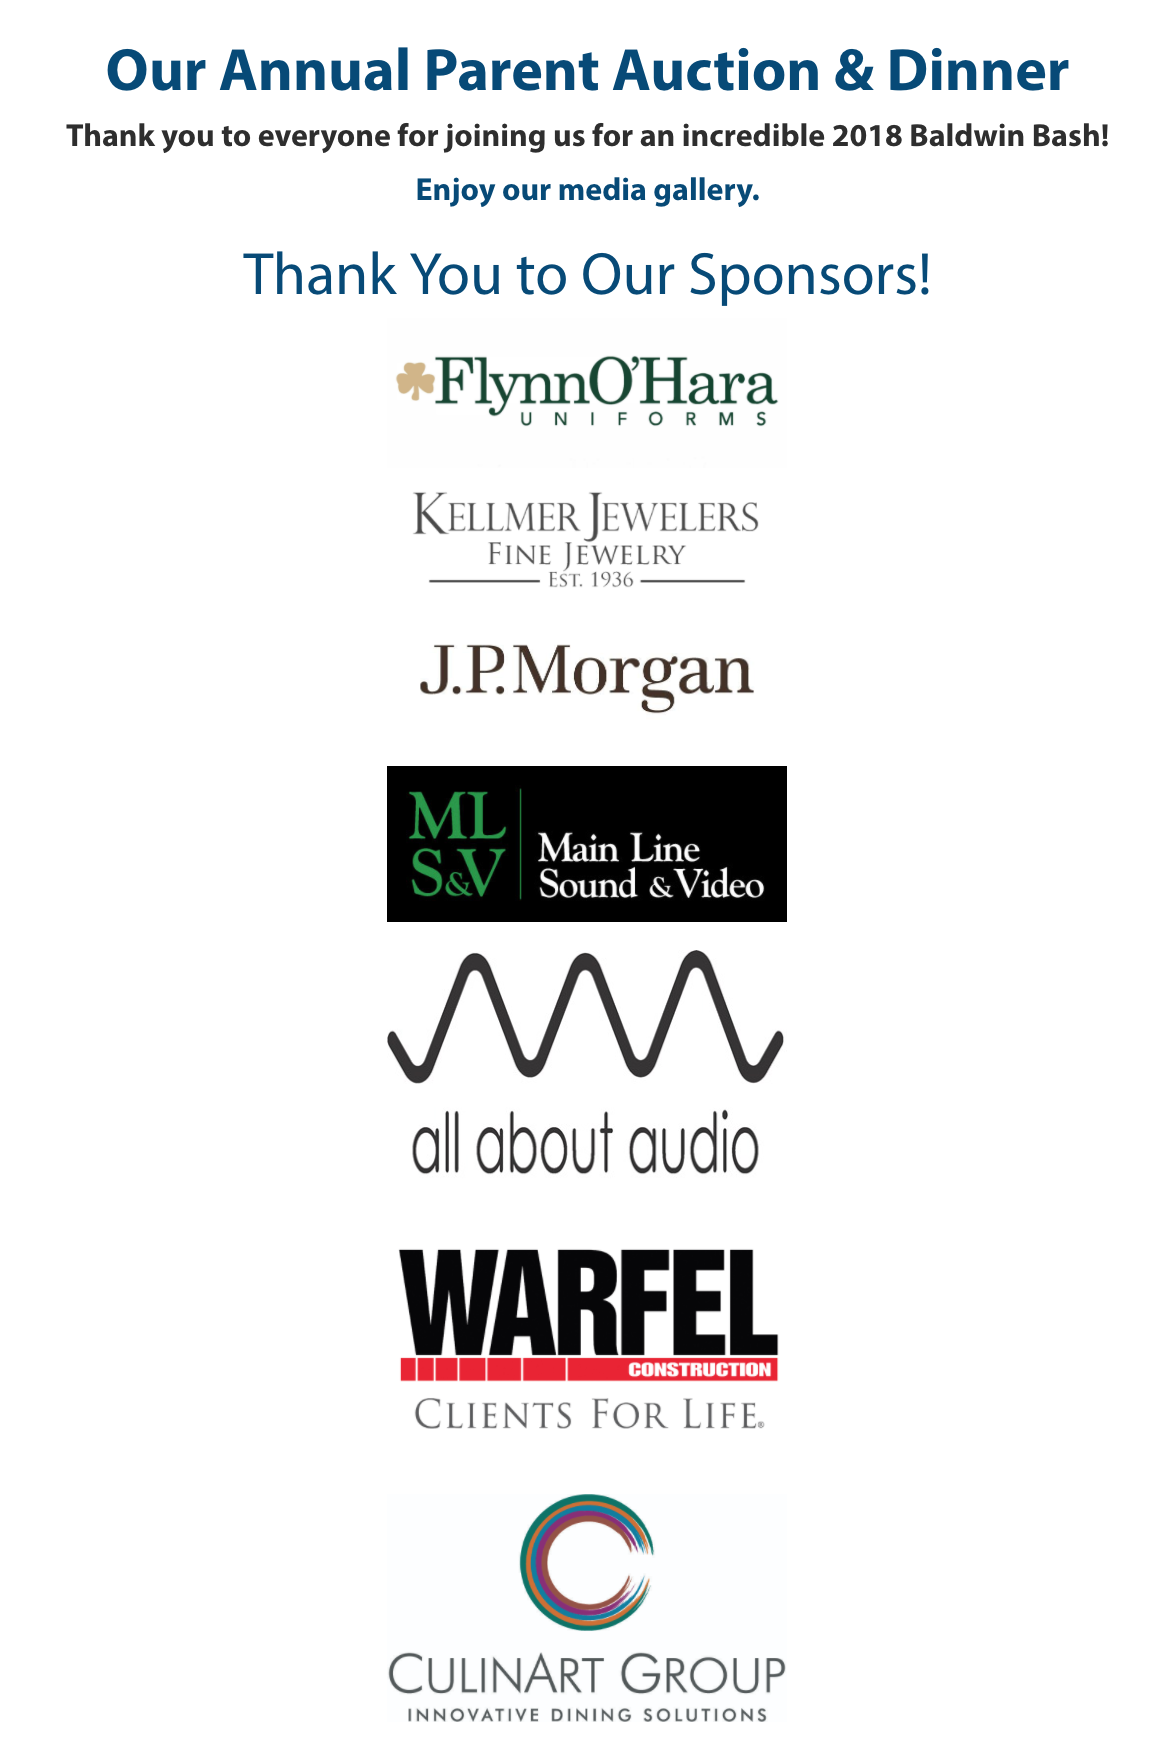 Image: Baldwin's numerous sponsors for their 2018 gala